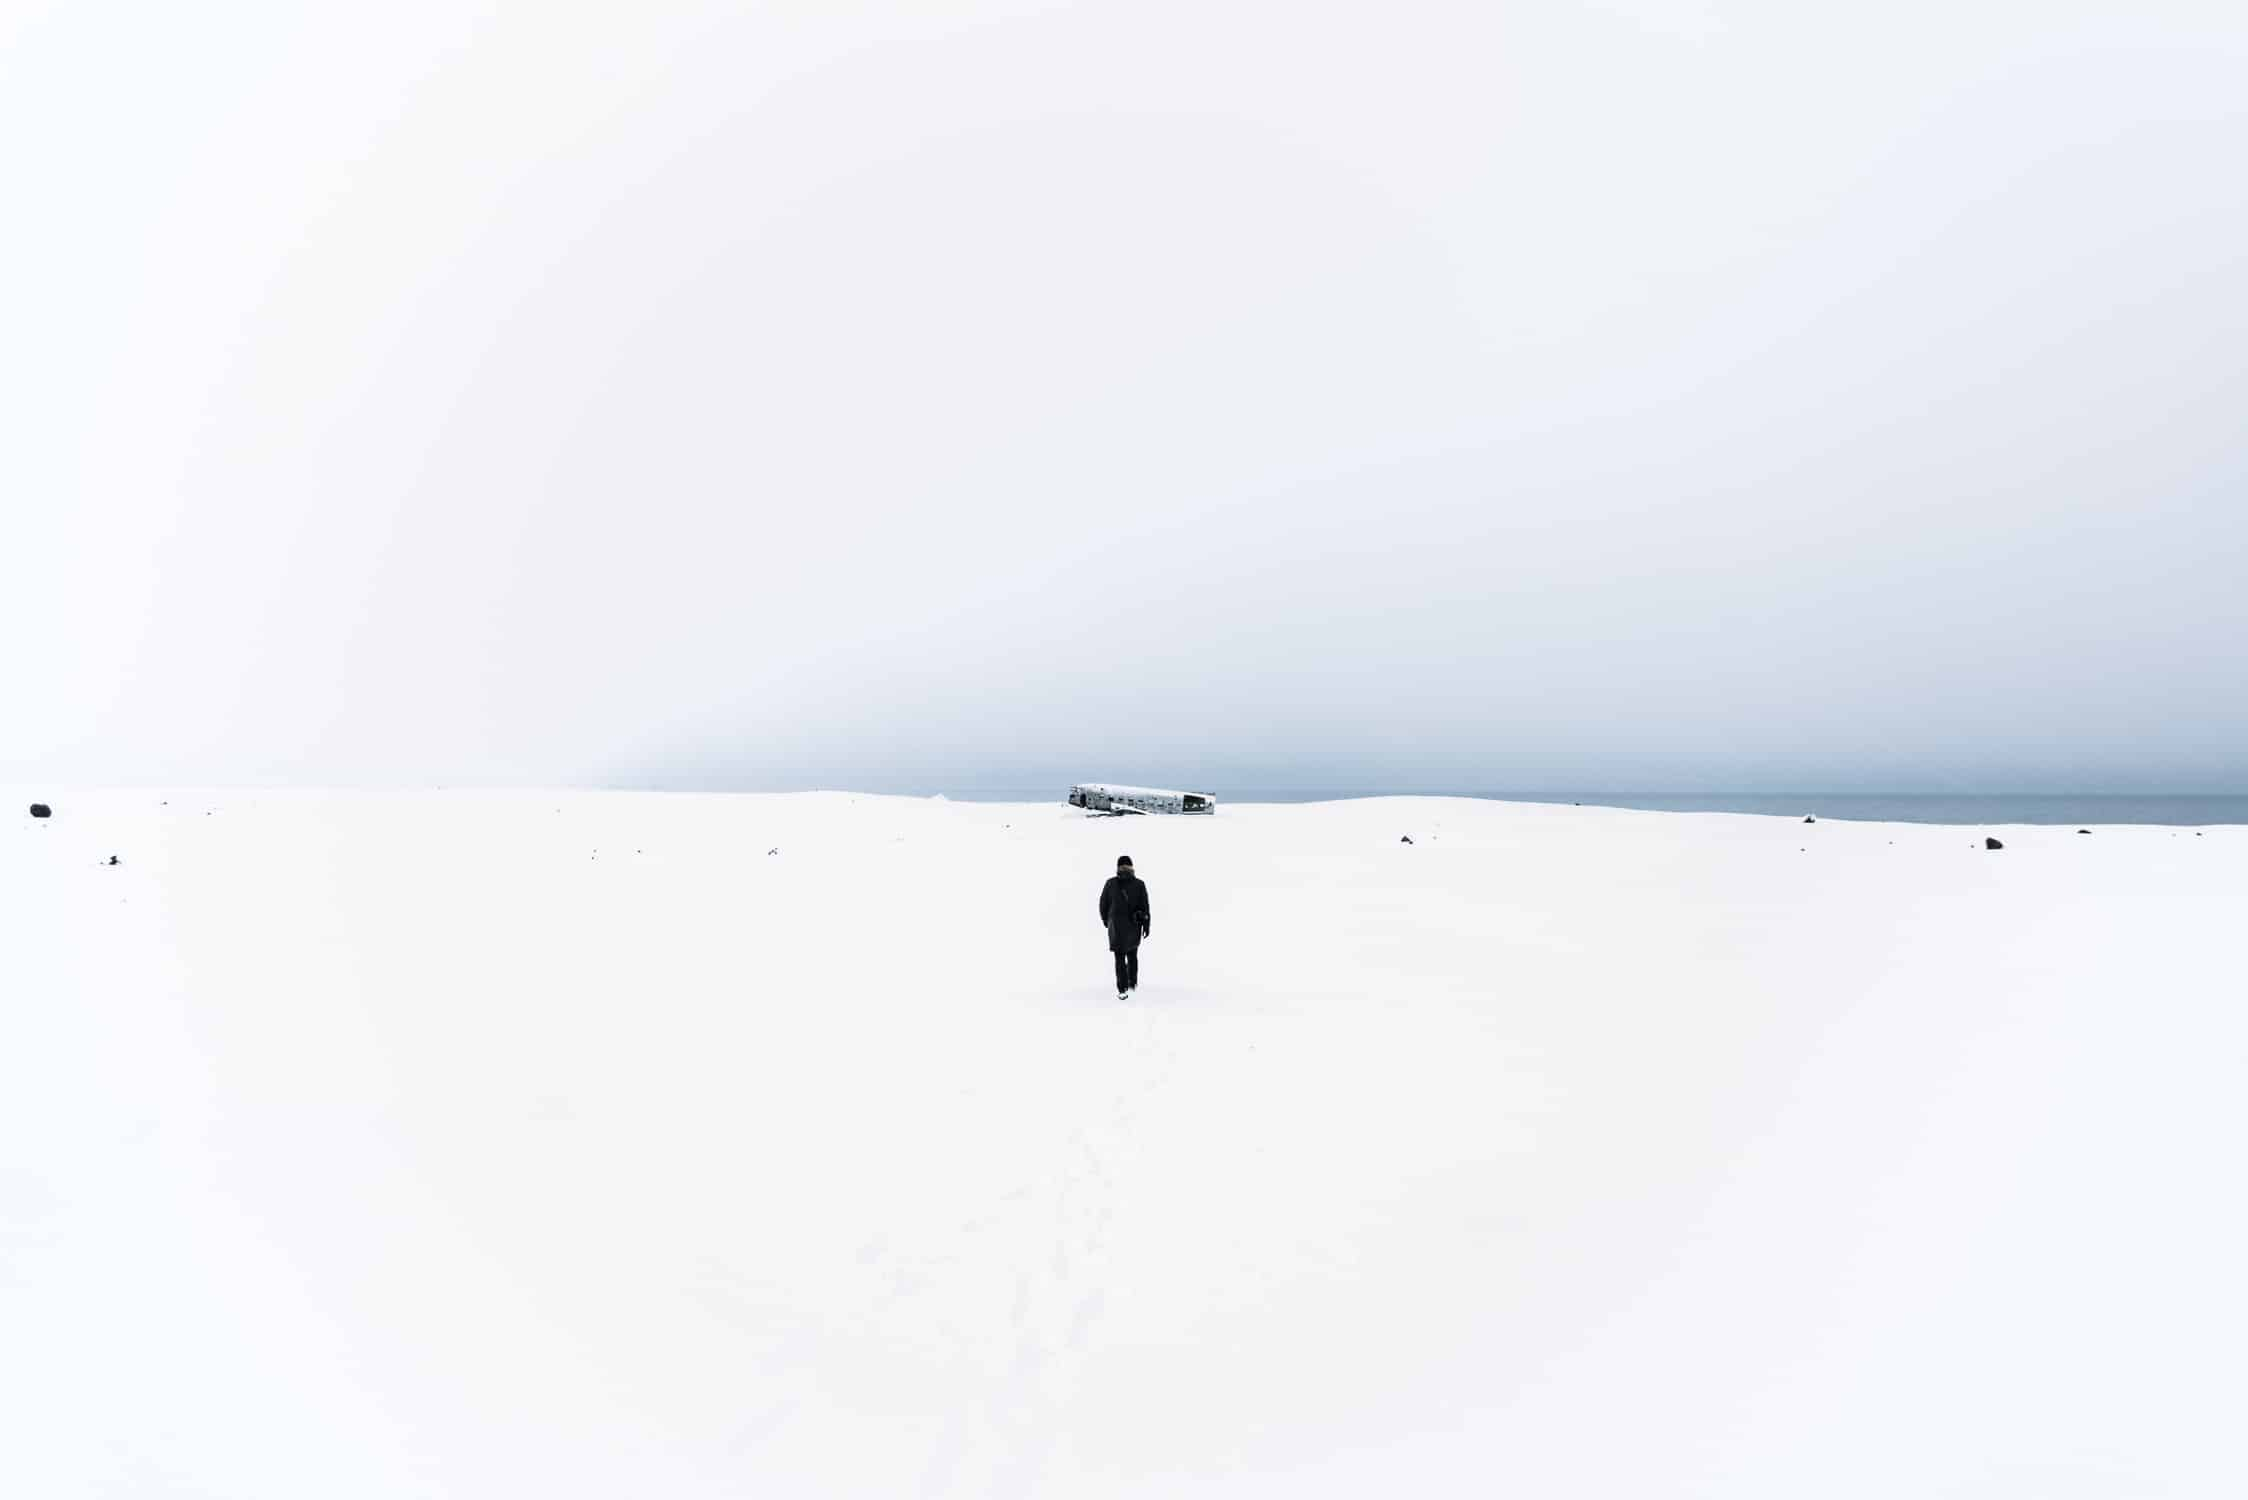 North tells the dramatic story of a polar expedition and explores the landscapes of the cold north of Iceland. By Michael Schauer